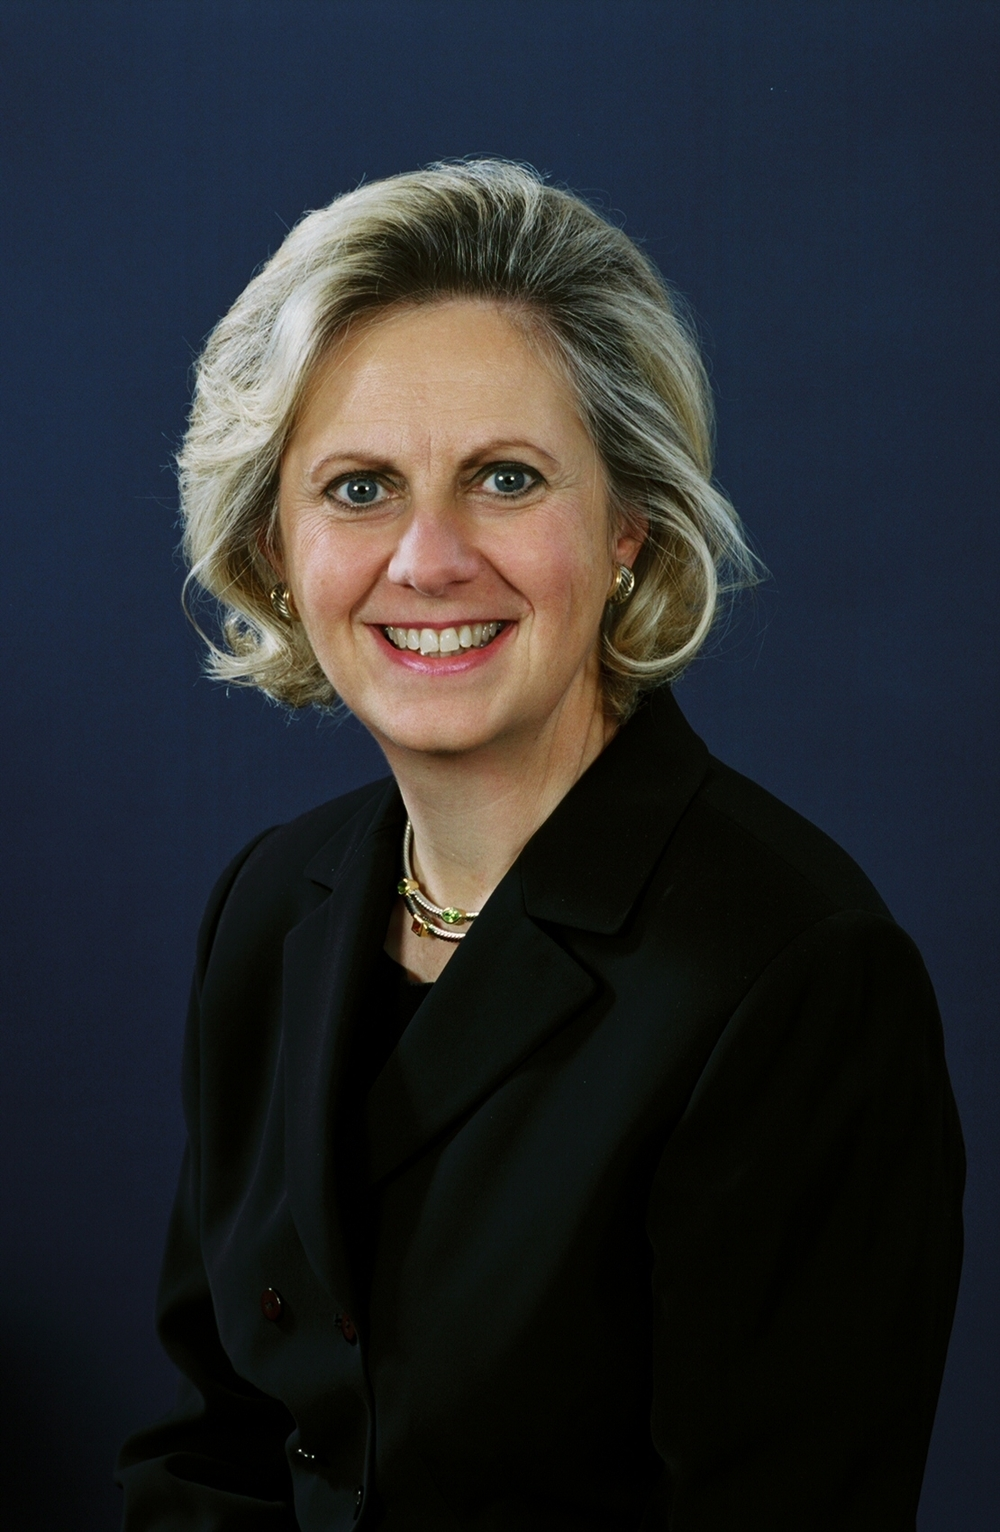 LAURA PILZ, MERRILL LYNCH